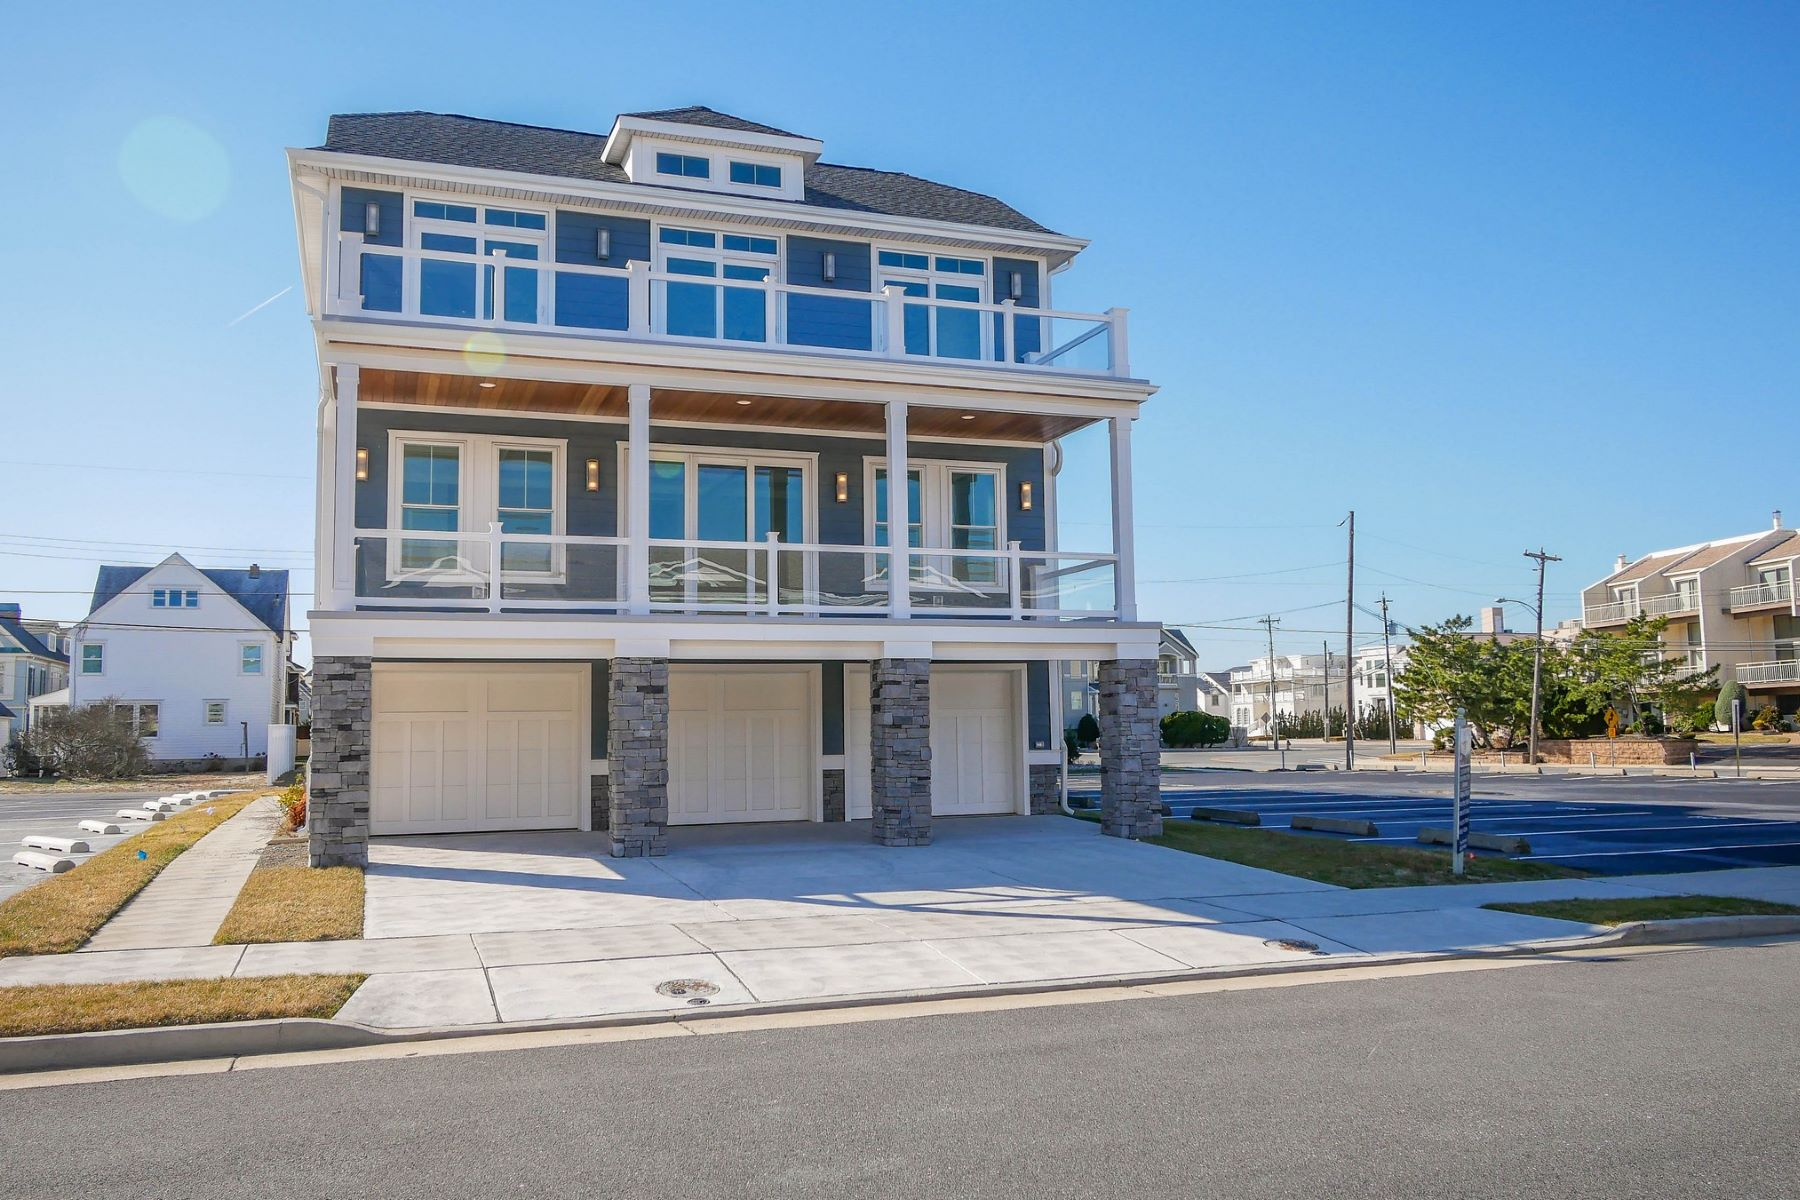 townhouses for Sale at 106 A S 16th Ave 106 B S 16th Ave, Longport, New Jersey 08403 United States